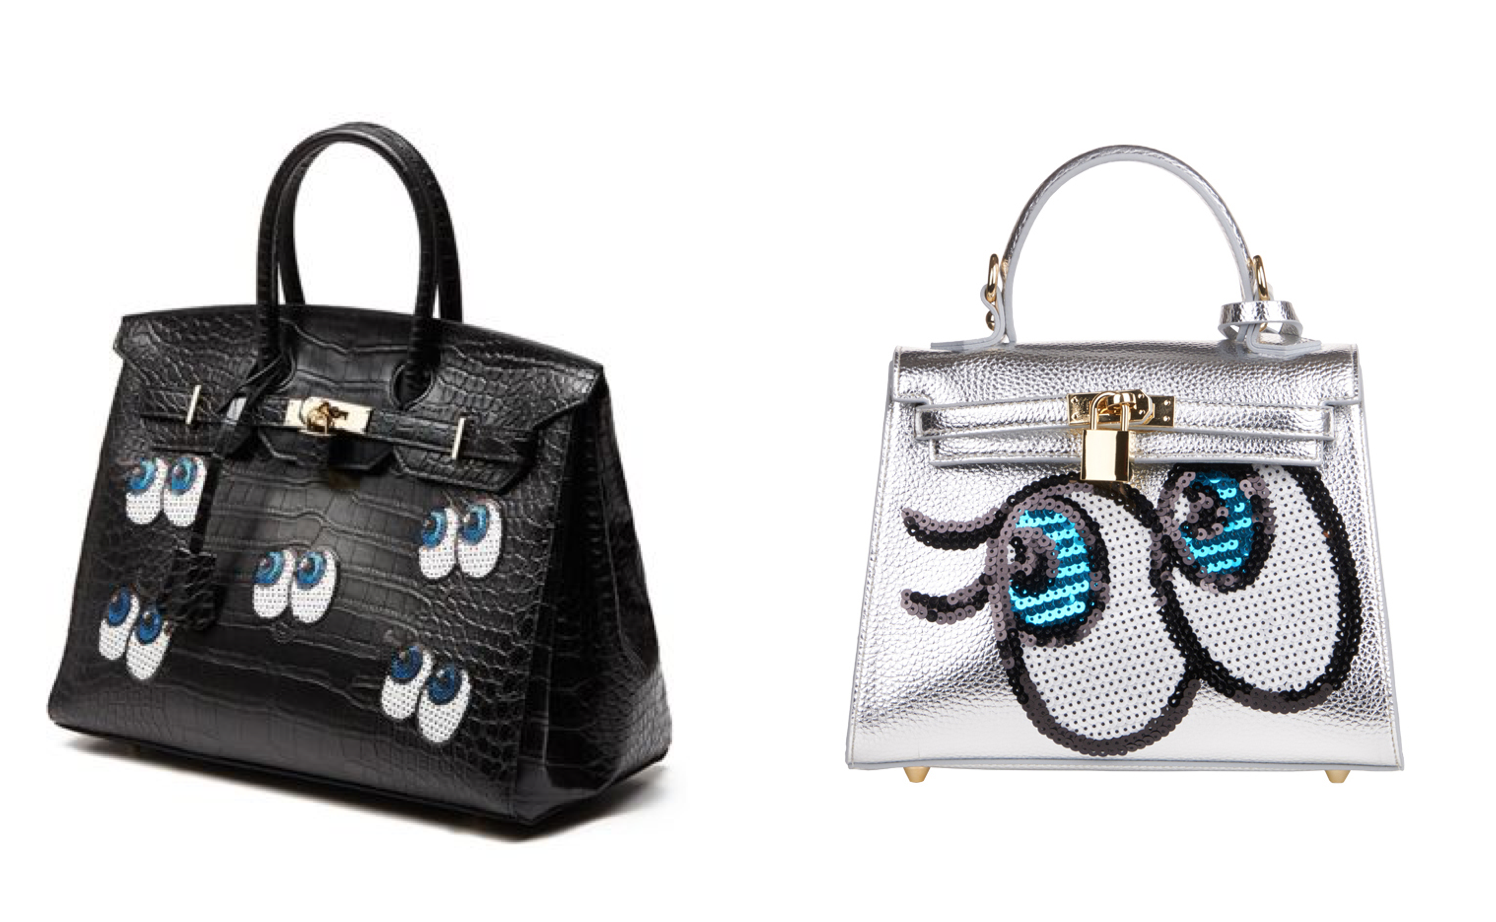 Two of PLAYNOMORE's bags